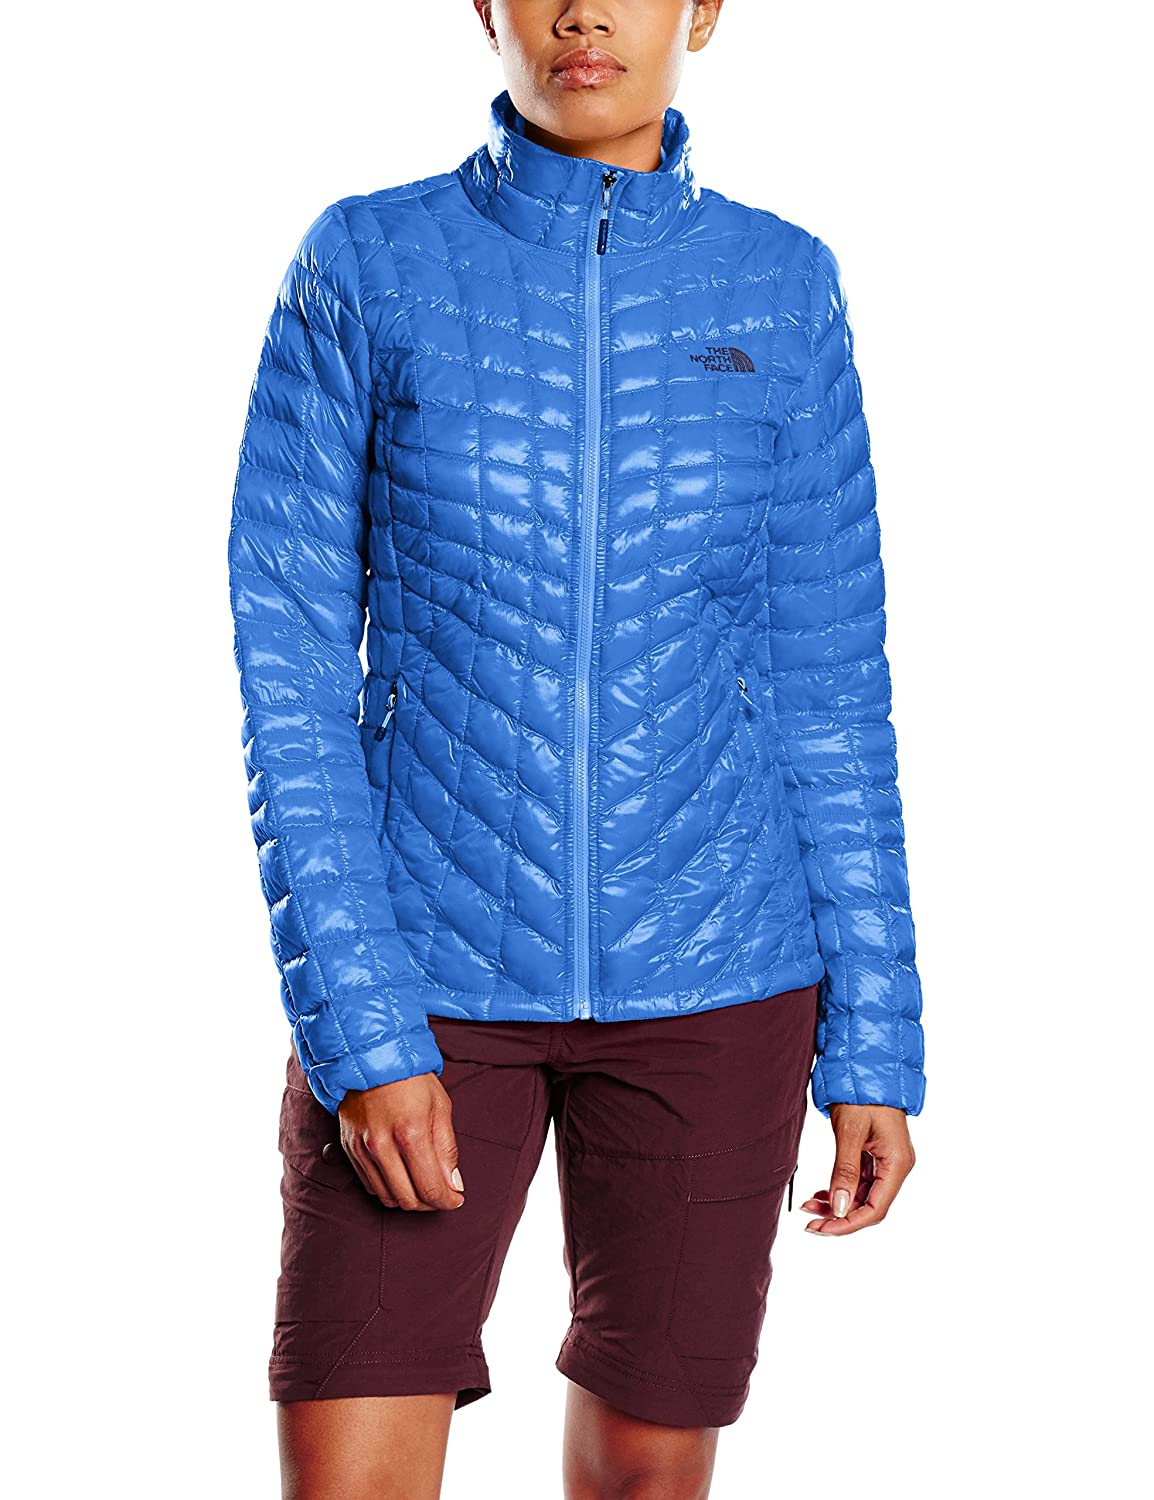 THE NORTH FACE W Thermoball Jacket - EU - Chaqueta para Mujer W Thermoball Jacket EU